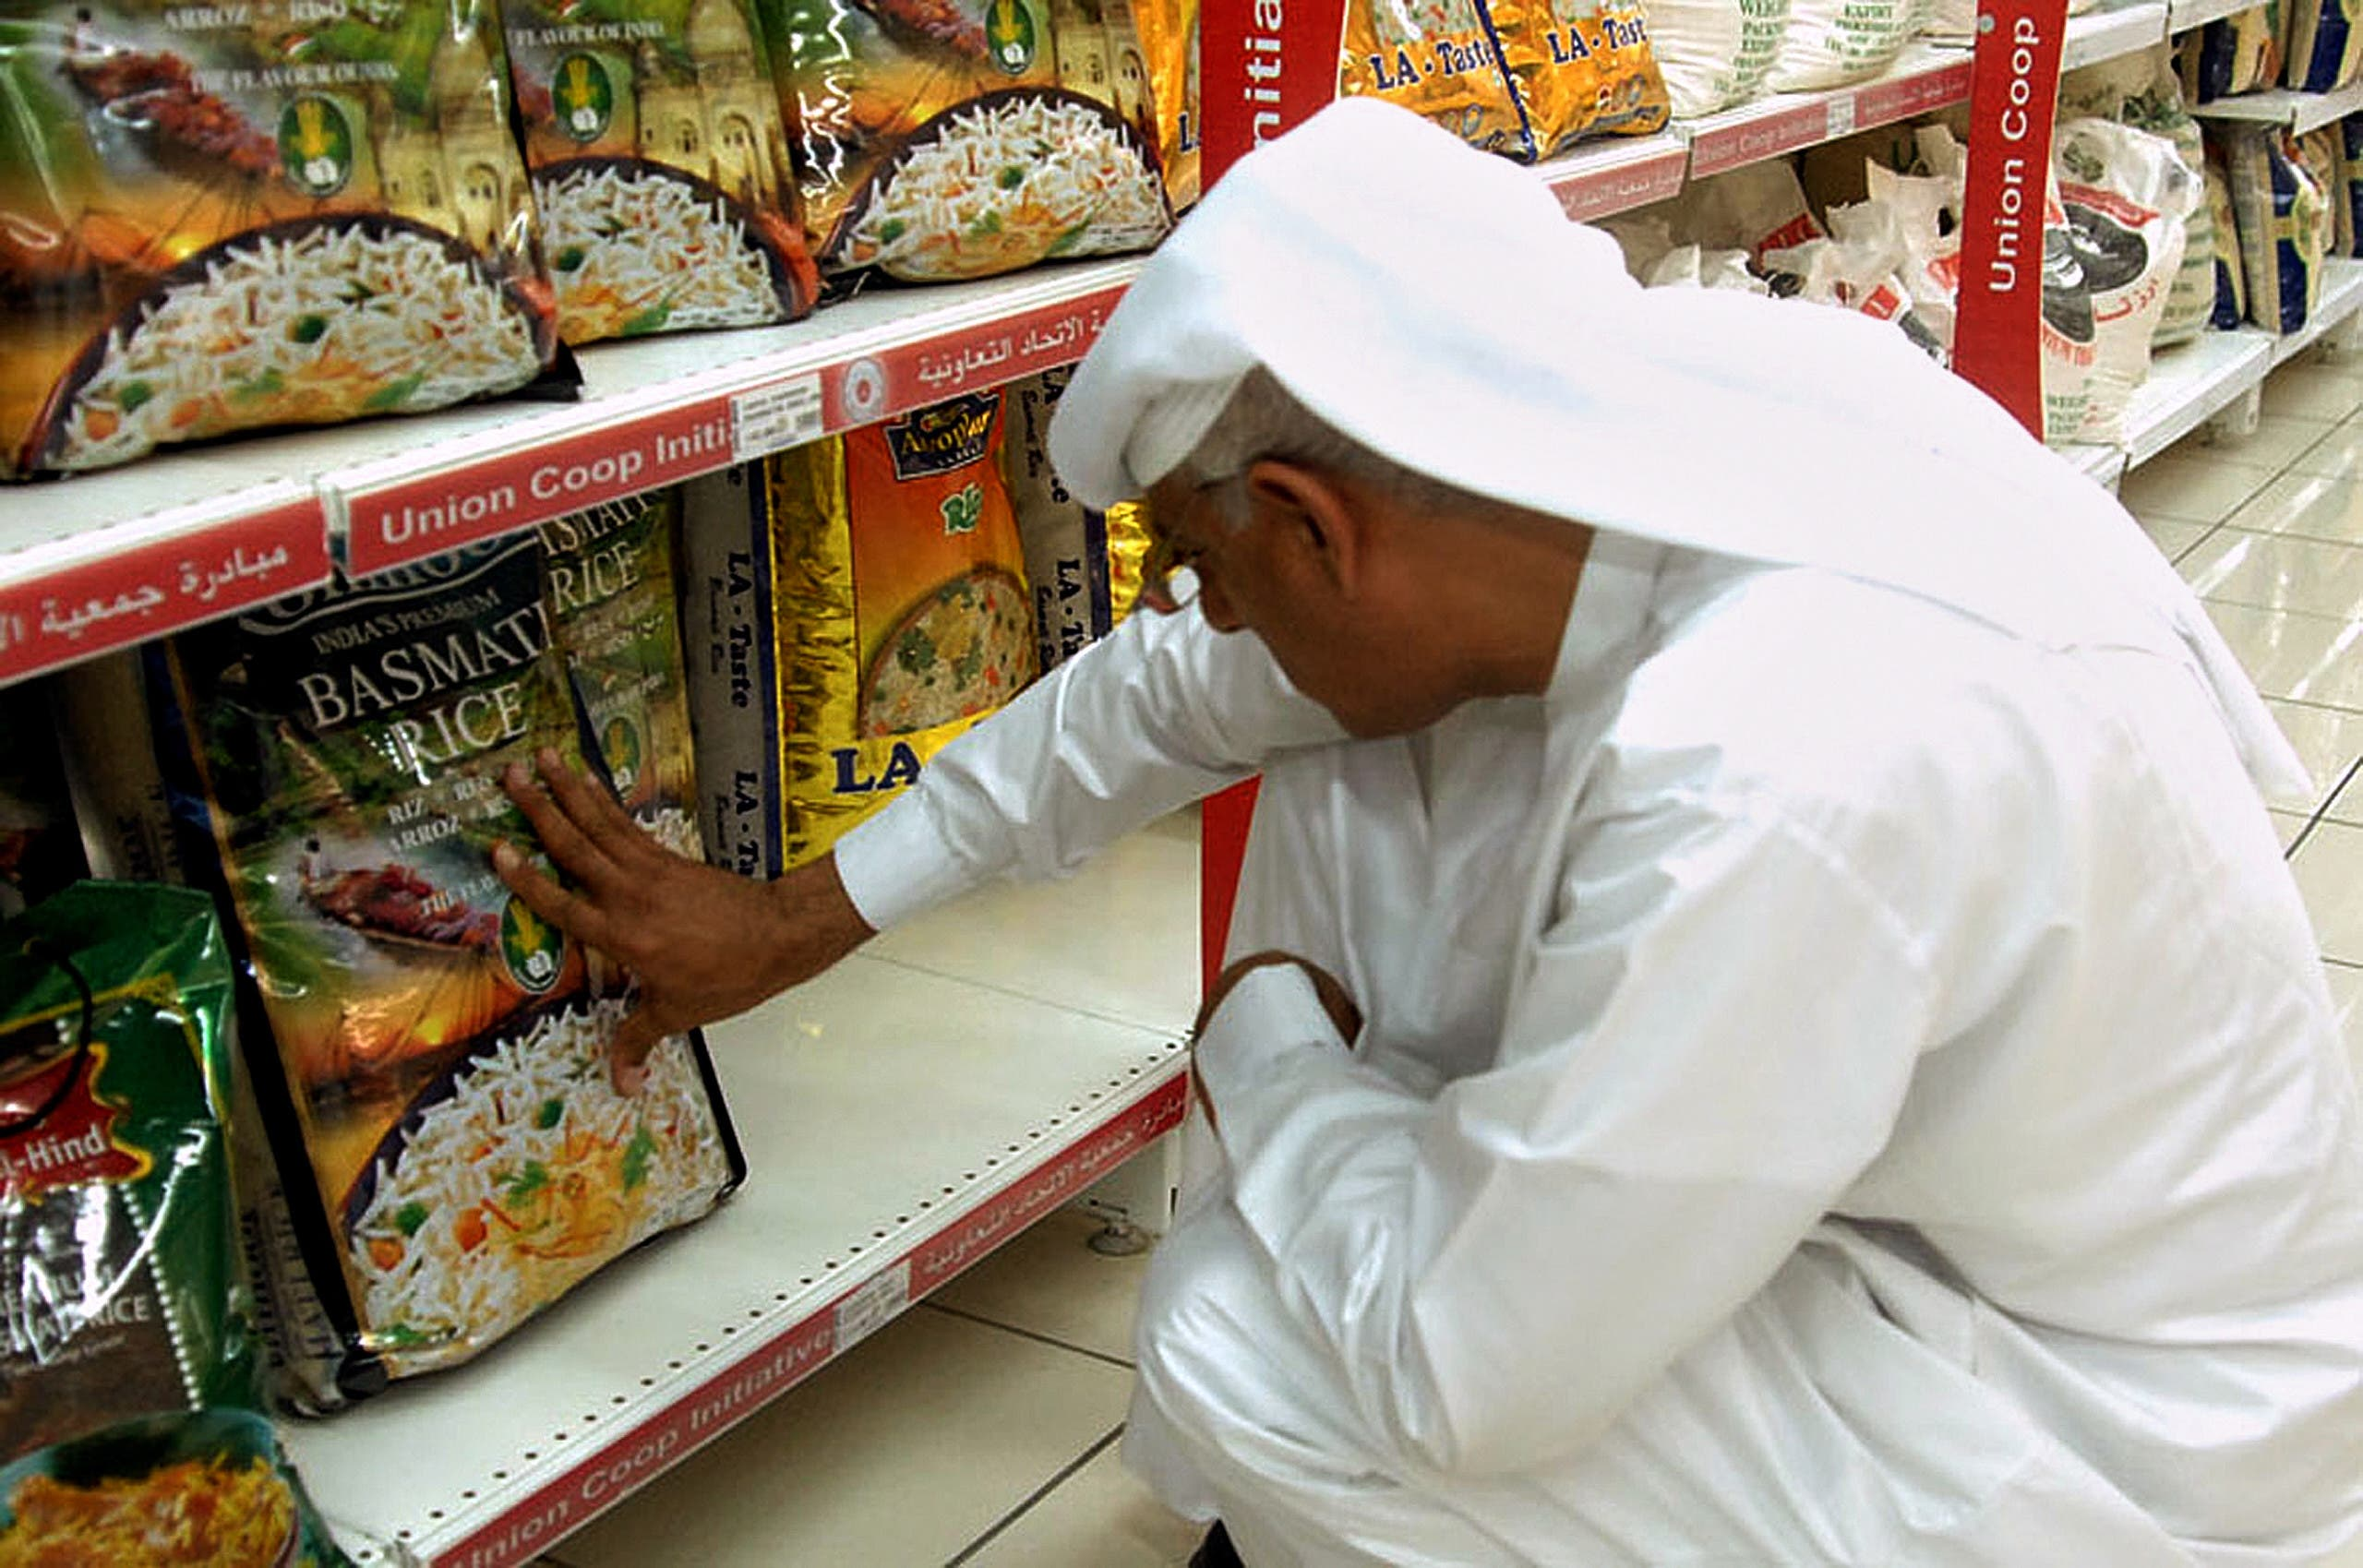 An Emirati man reads the front of a package of Indian Basmati rice in a supermarket in Dubai on July 19, 2008. (File photo: AFP)